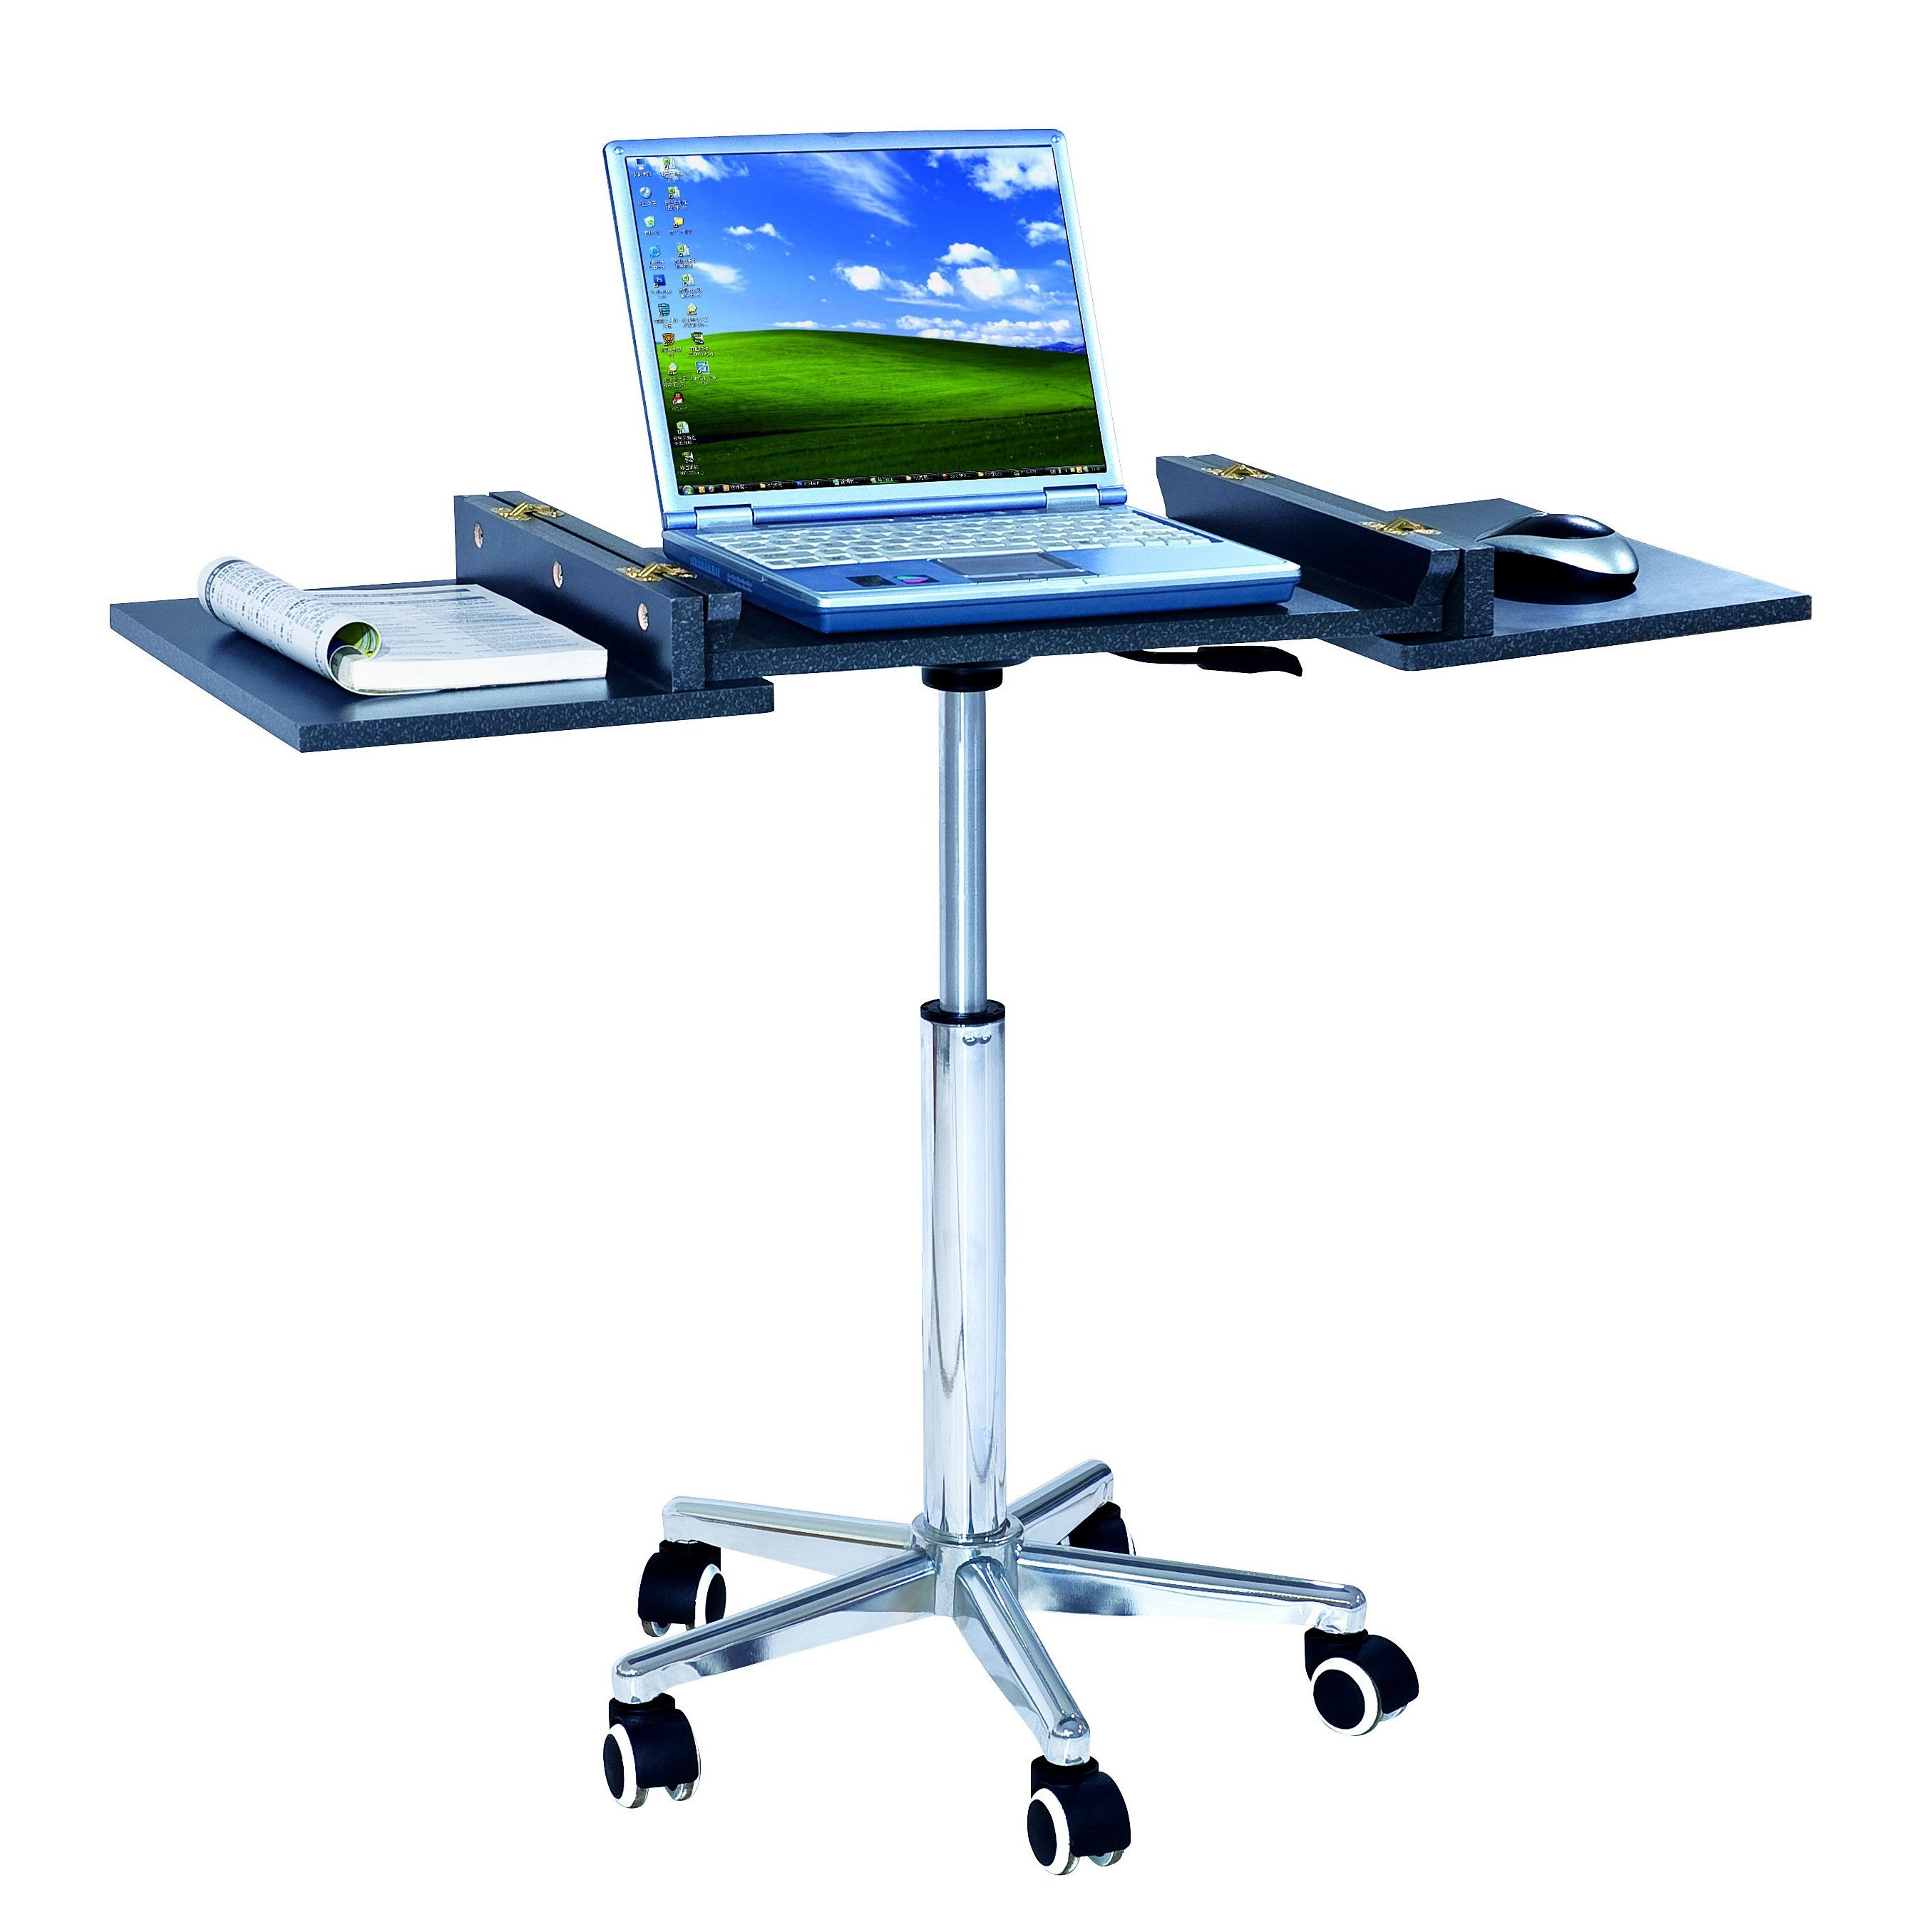 Adjustable Laptop Cart Adjustable Computer Desk Portable Desk Portable Laptop Desk